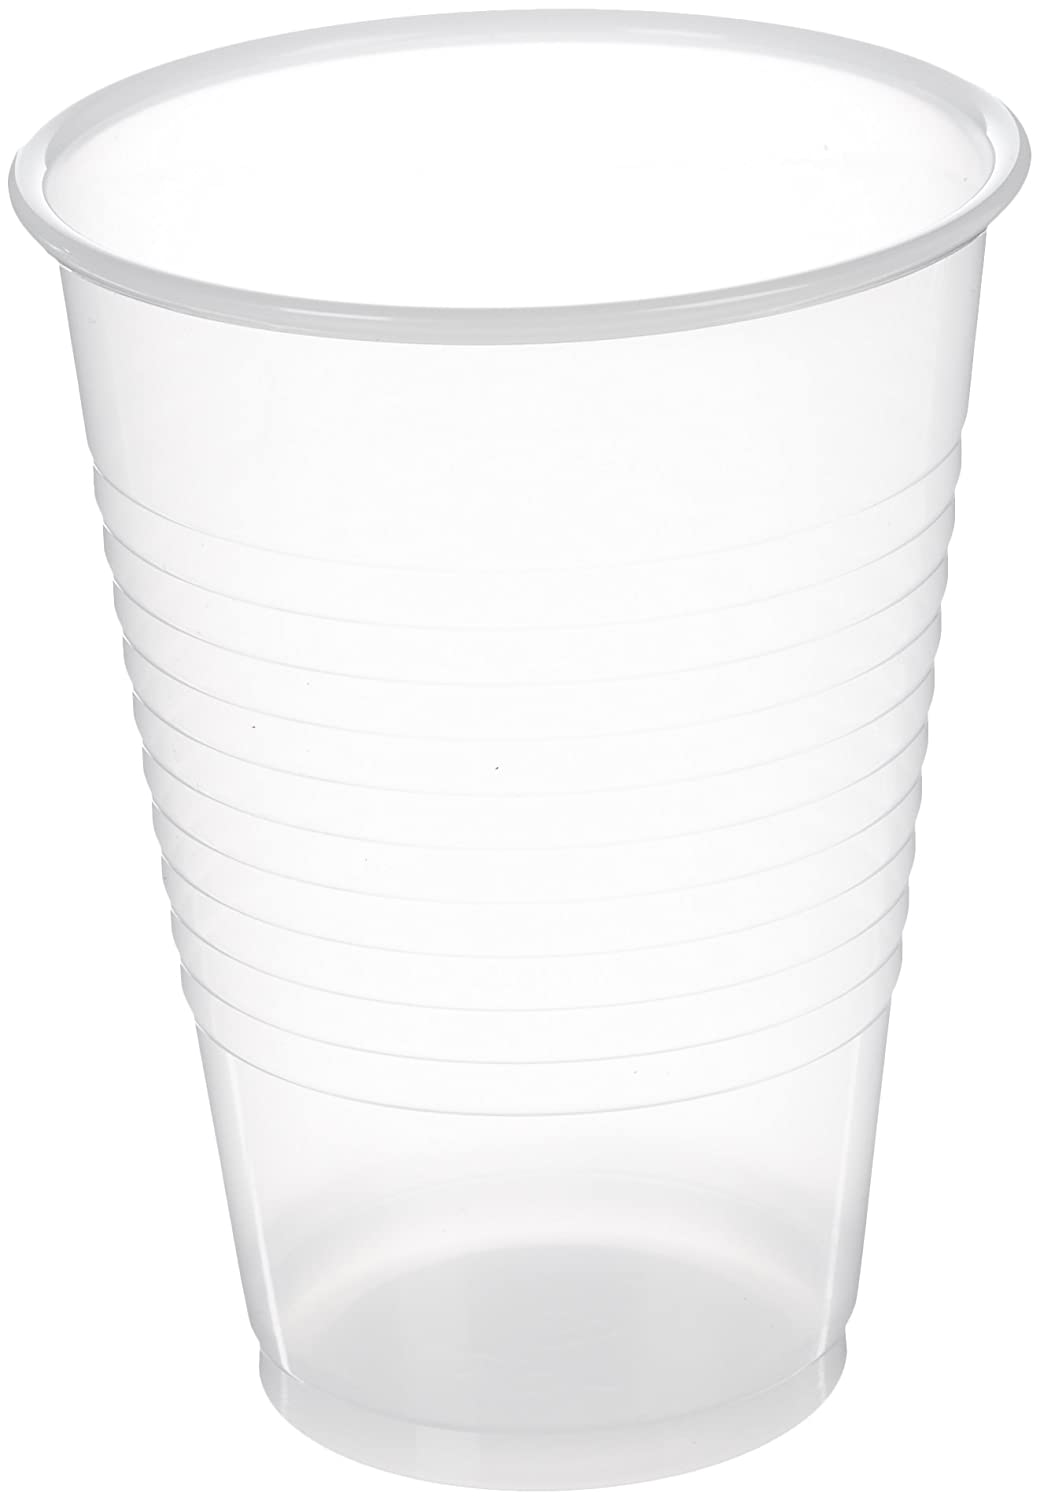 AmazonBasics Plastic Cups, Clear - 12-Ounce, 500-Pack